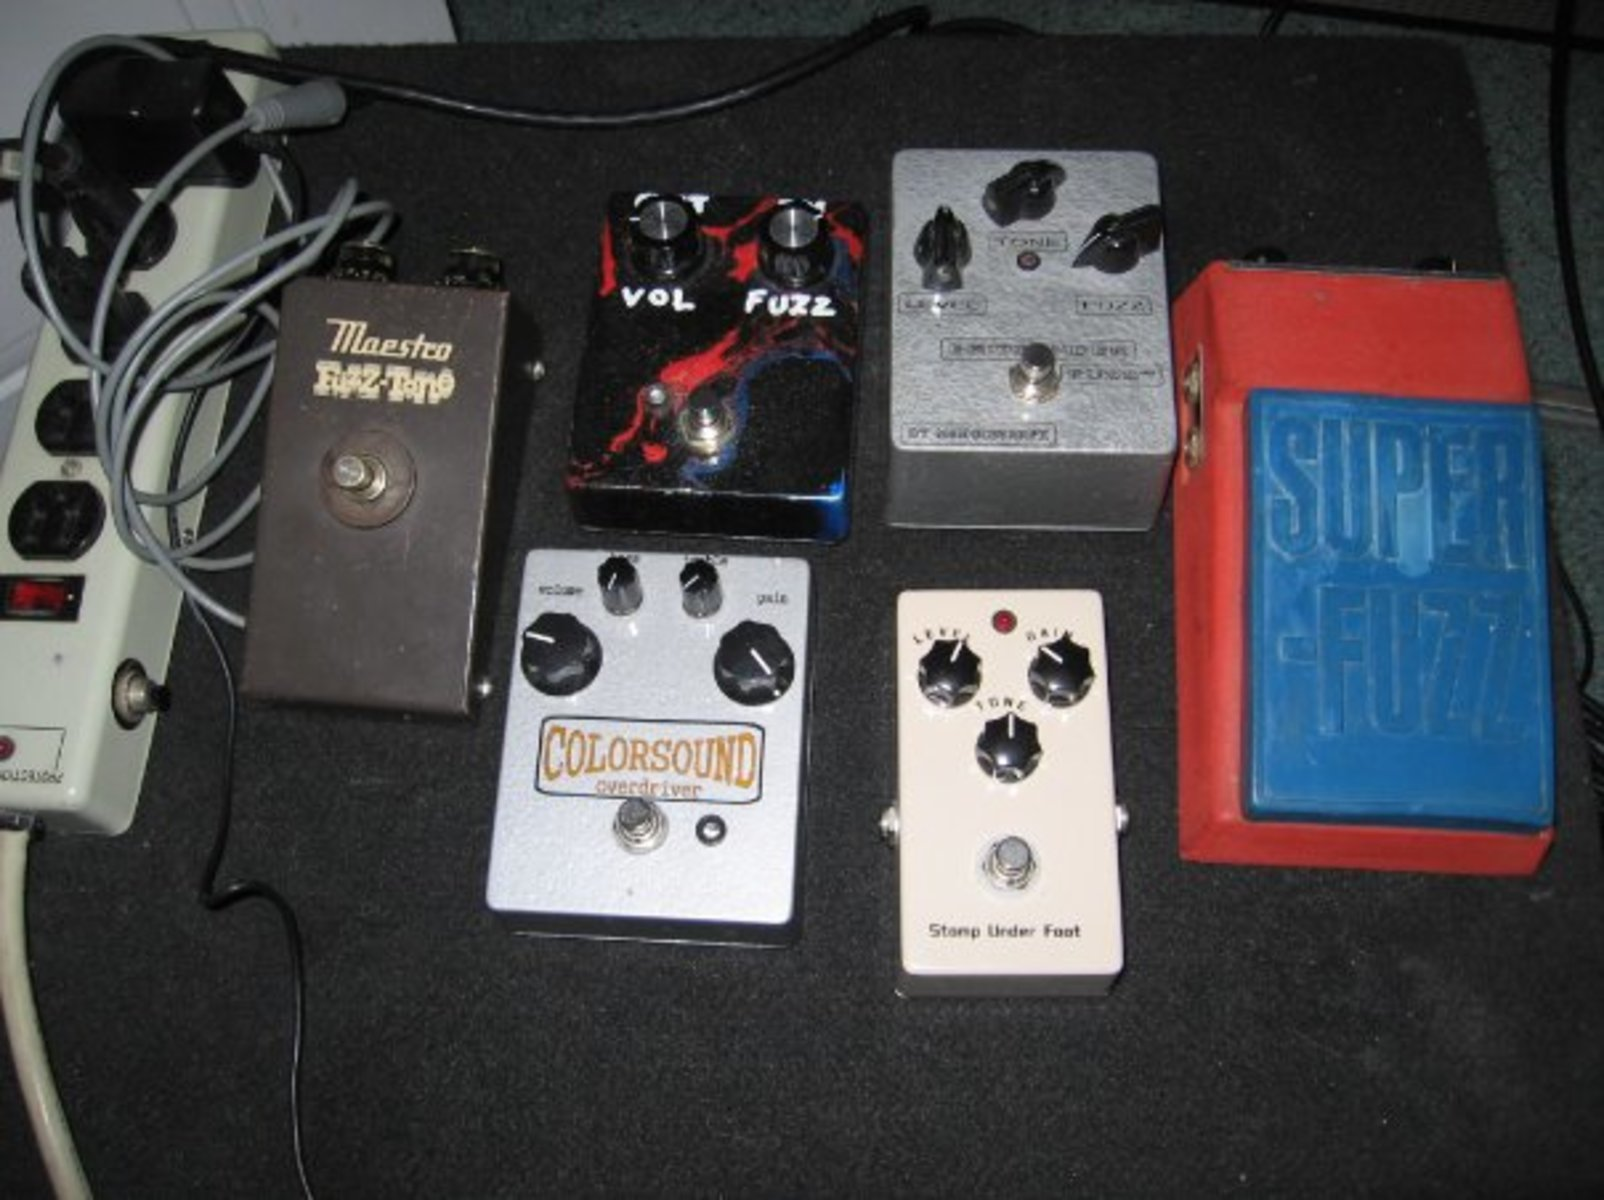 jimmarchi1's music gear photo containing Univox U-1095 Super-Fuzz, Maestro Fuzz-Tone, and Colorsound Overdriver